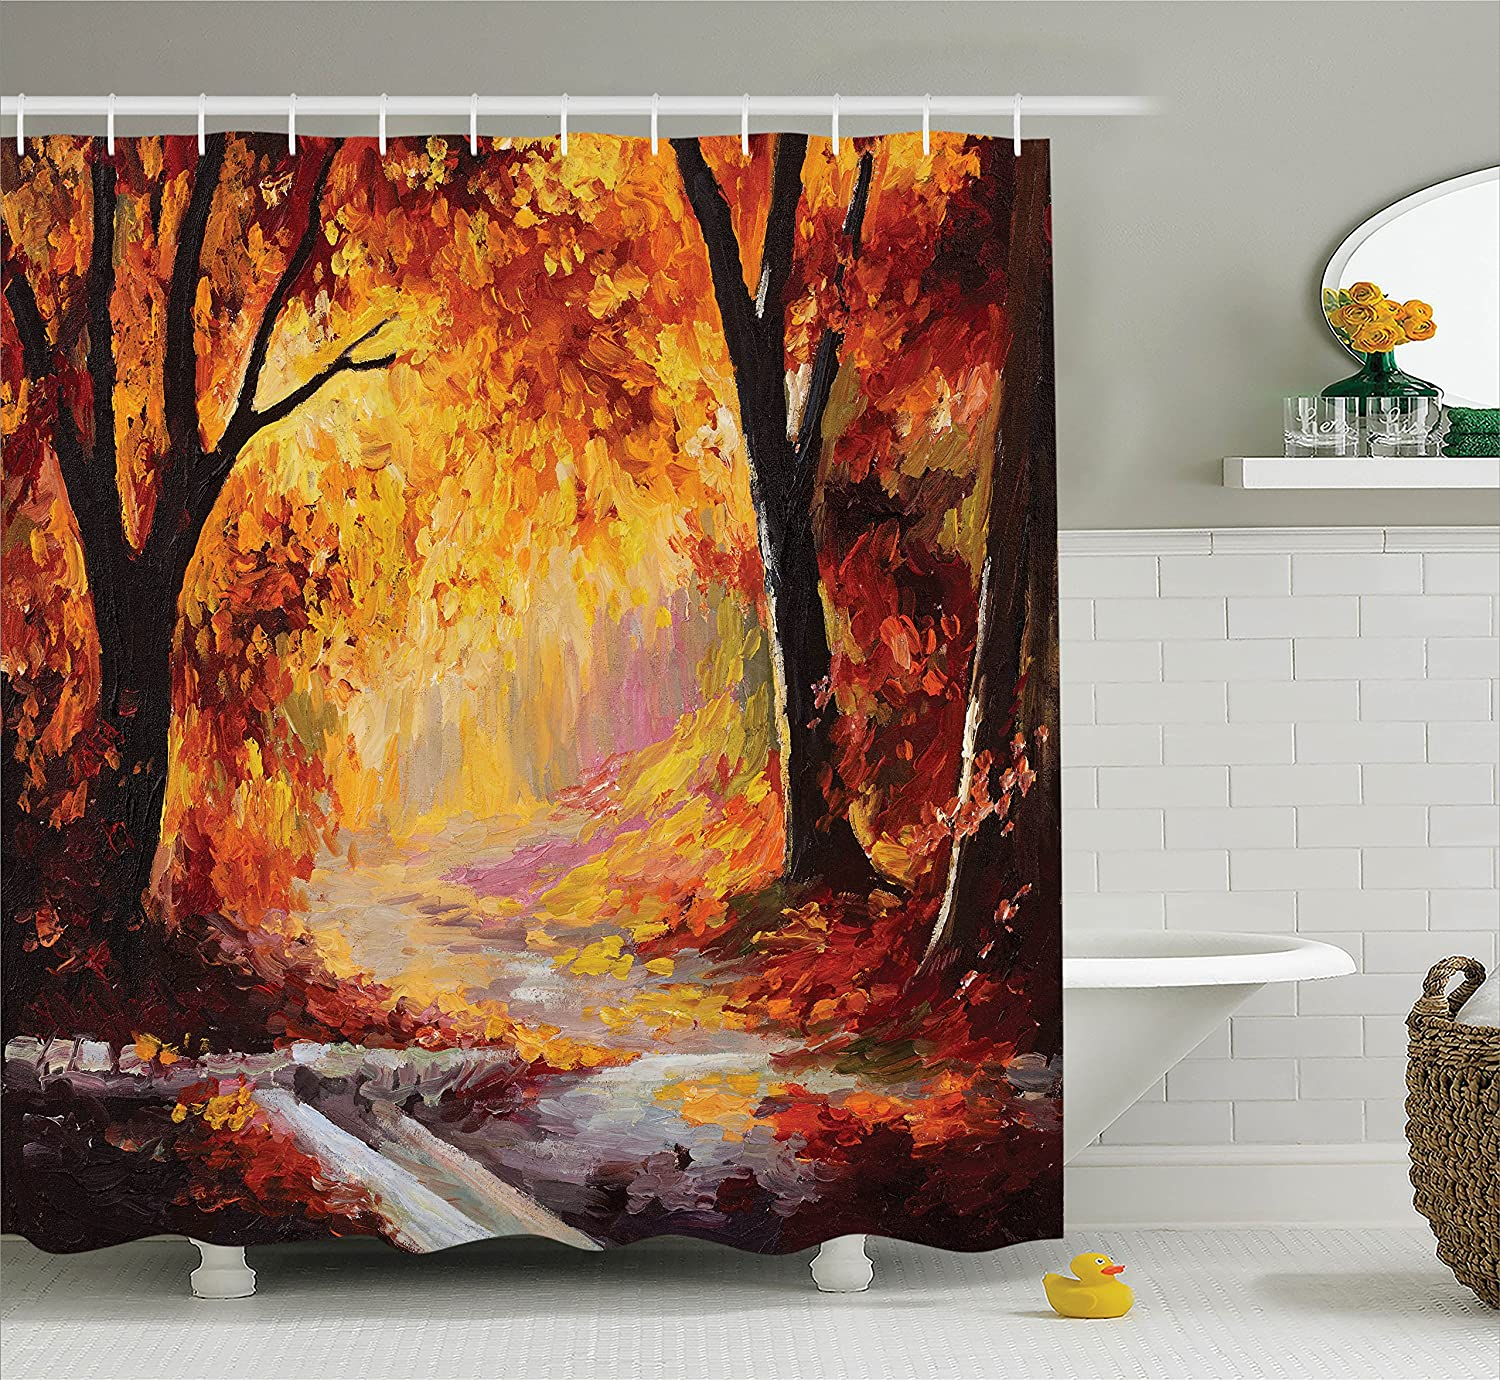 Amazon.com: Ambesonne Country Shower Curtain, Paint of a Forest with ...